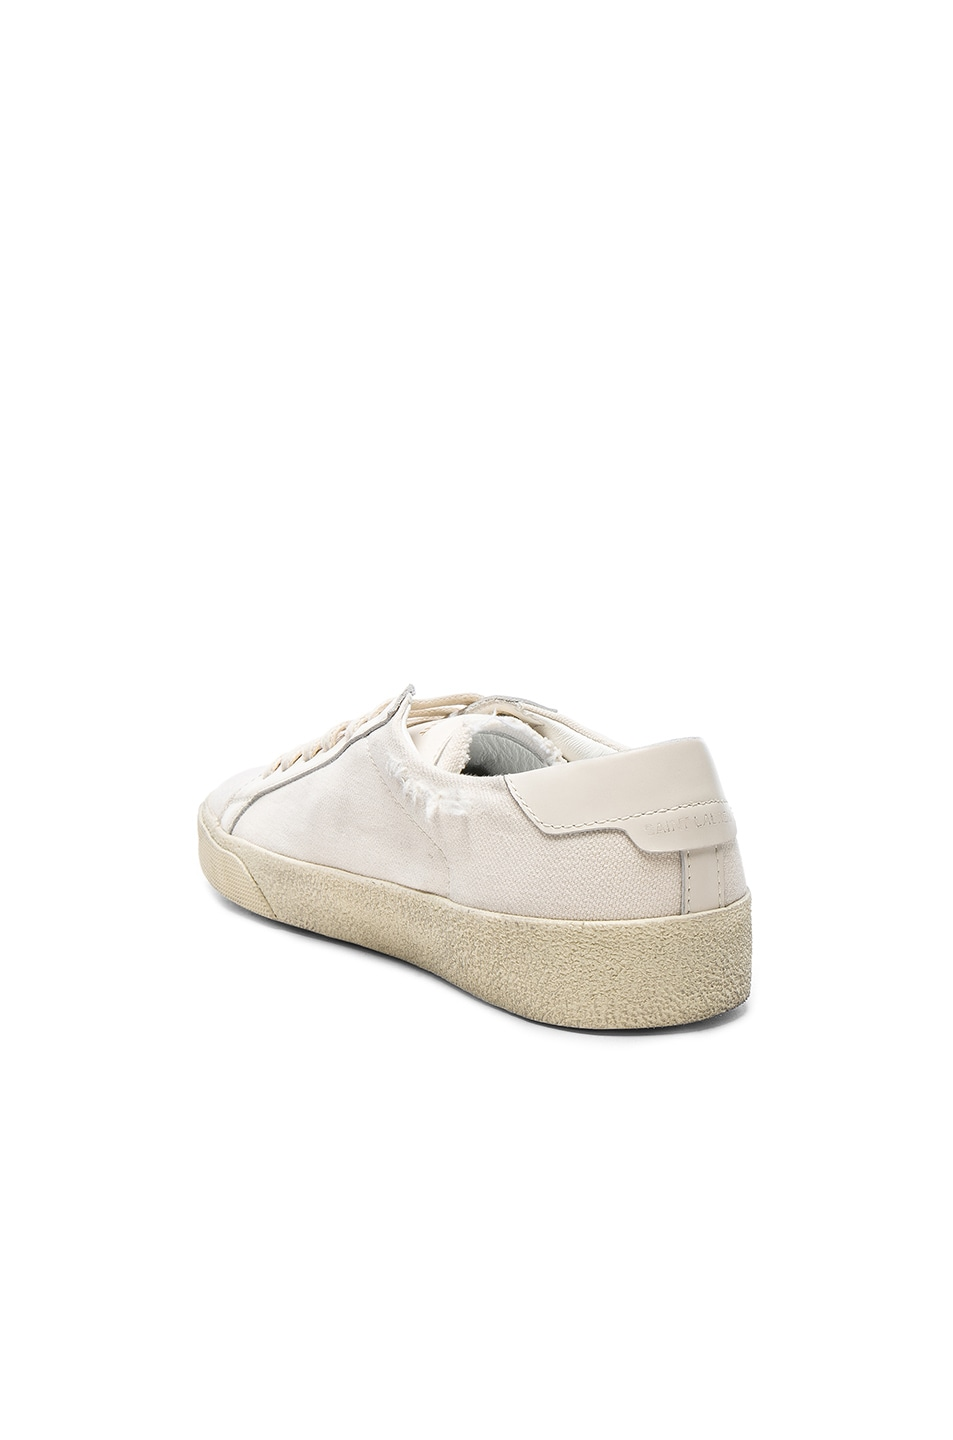 Image 3 of Saint Laurent Leather Court Classic Logo Sneakers in Optic White & Black